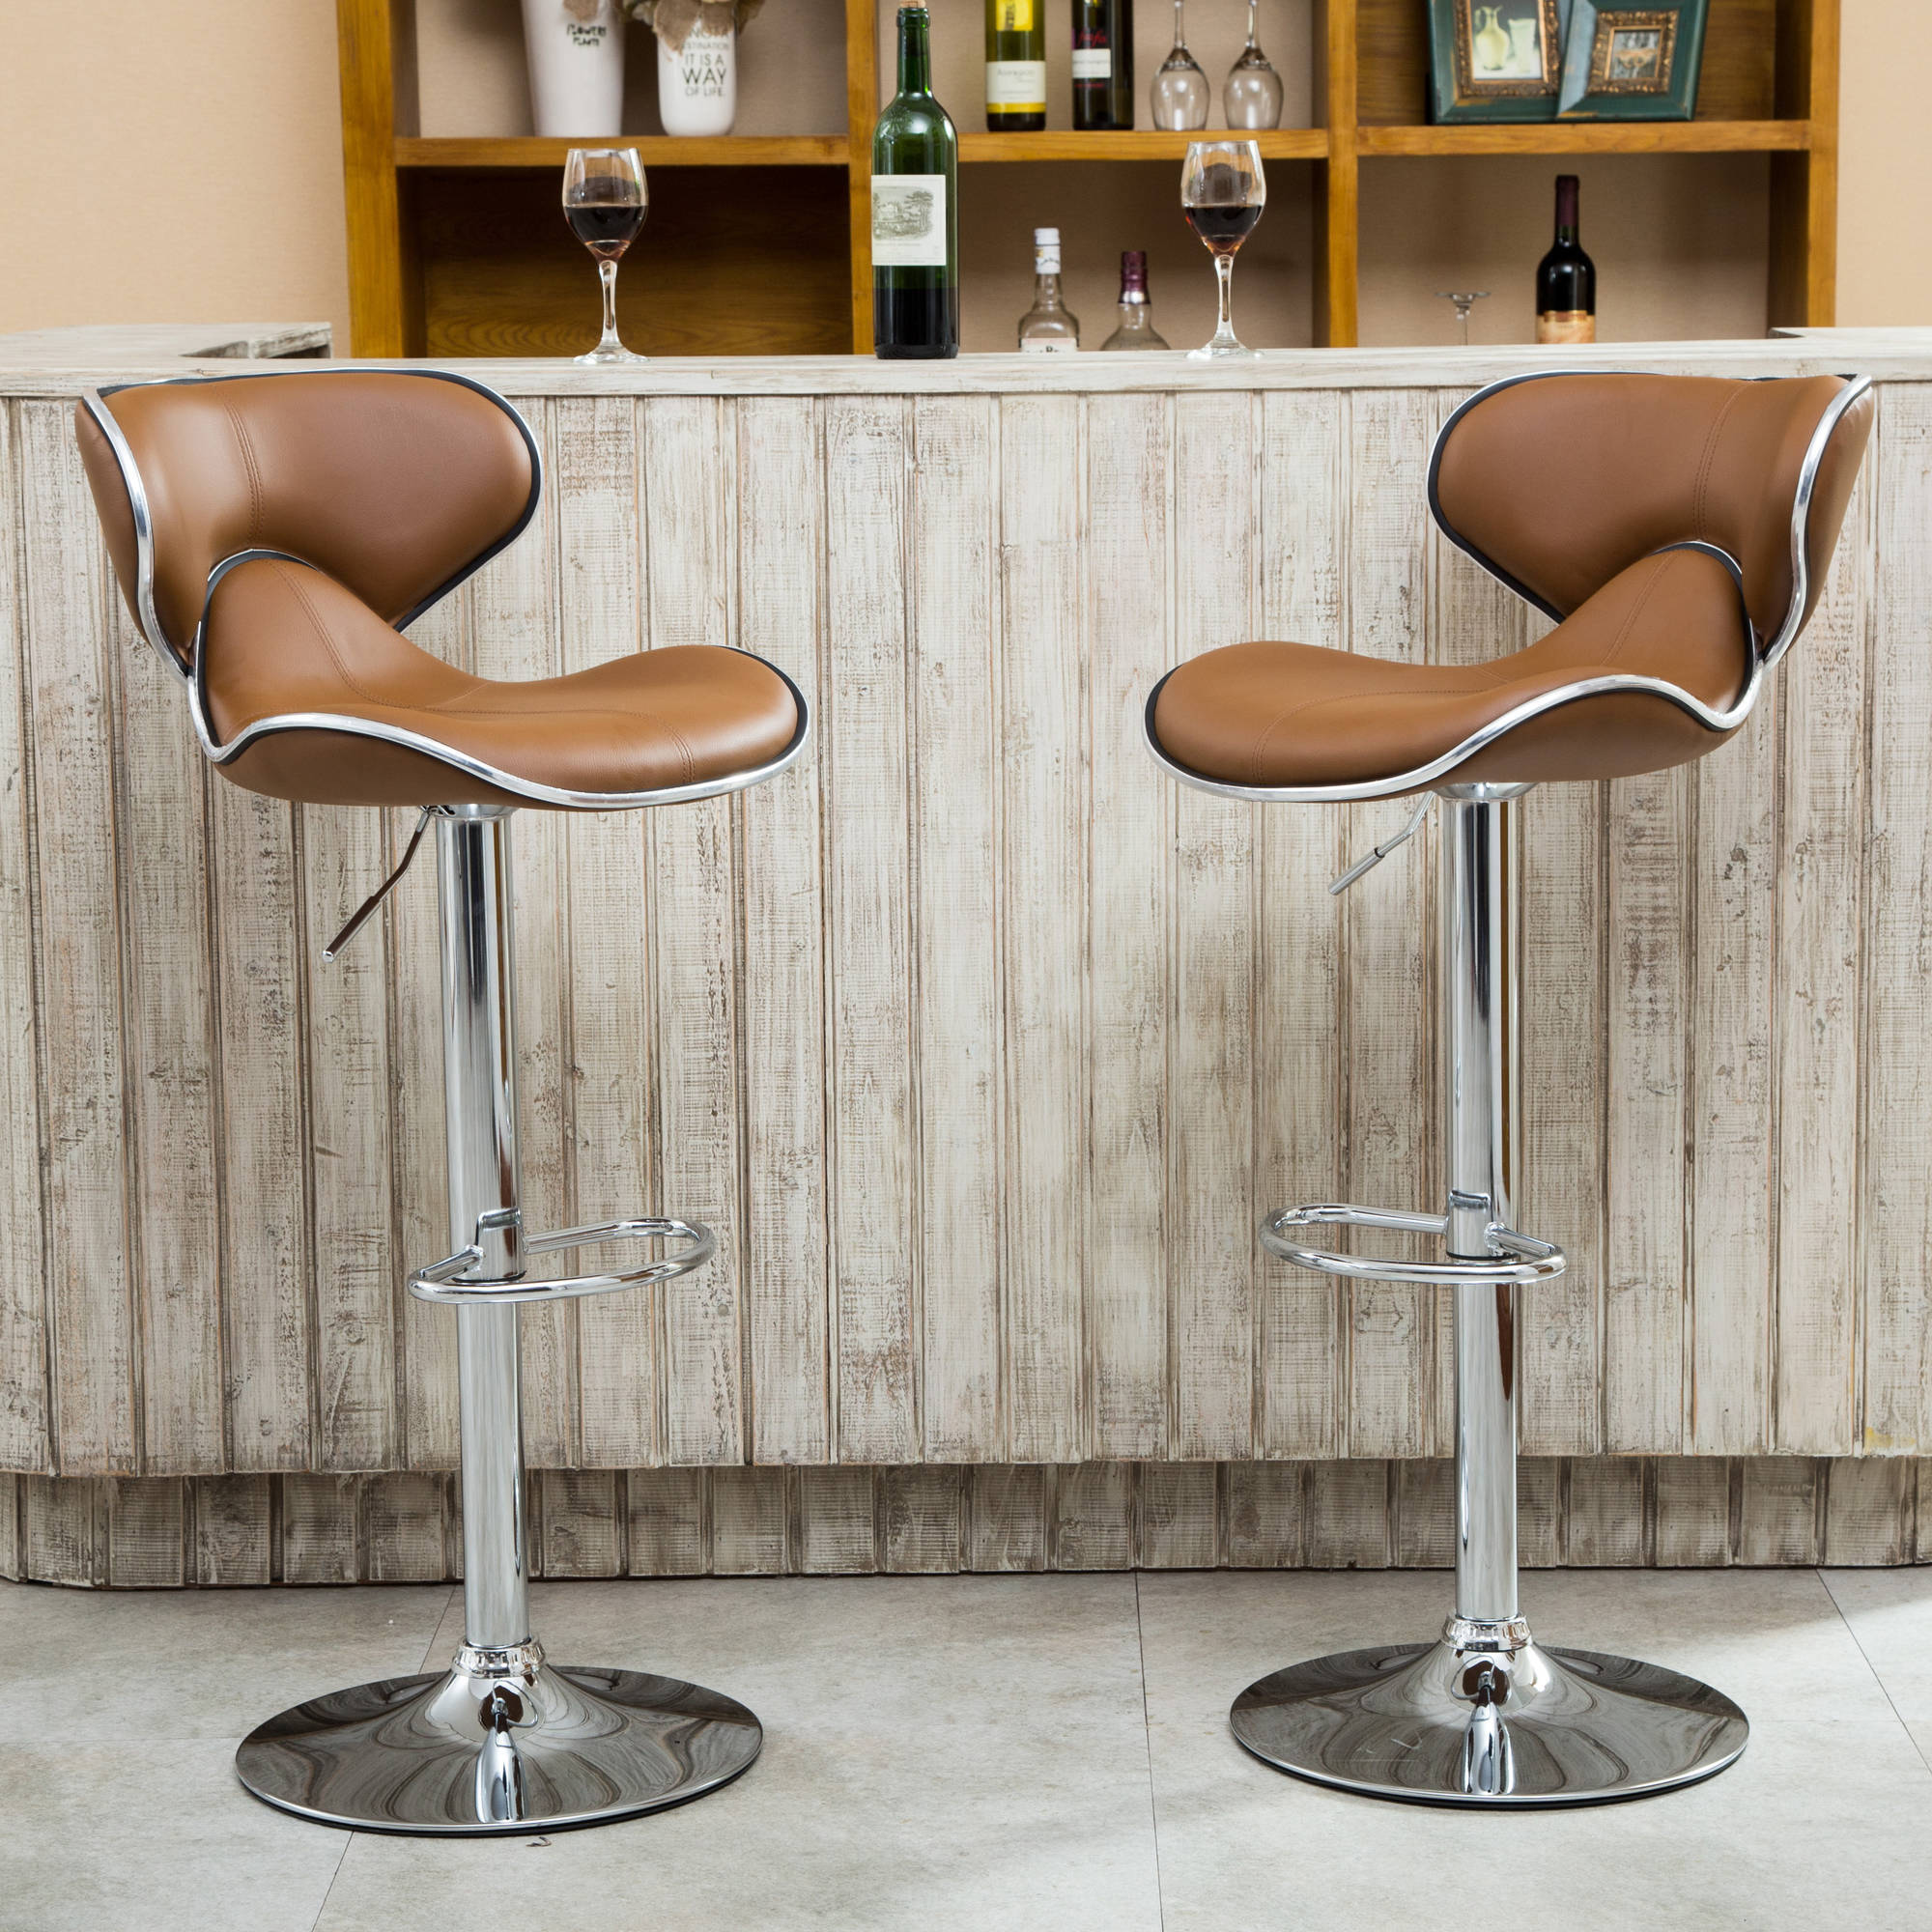 Roundhill Masaccio Cushioned Leatherette Upholstery Airlift Adjustable  Swivel Barstool With Chrome Base, Set Of 2